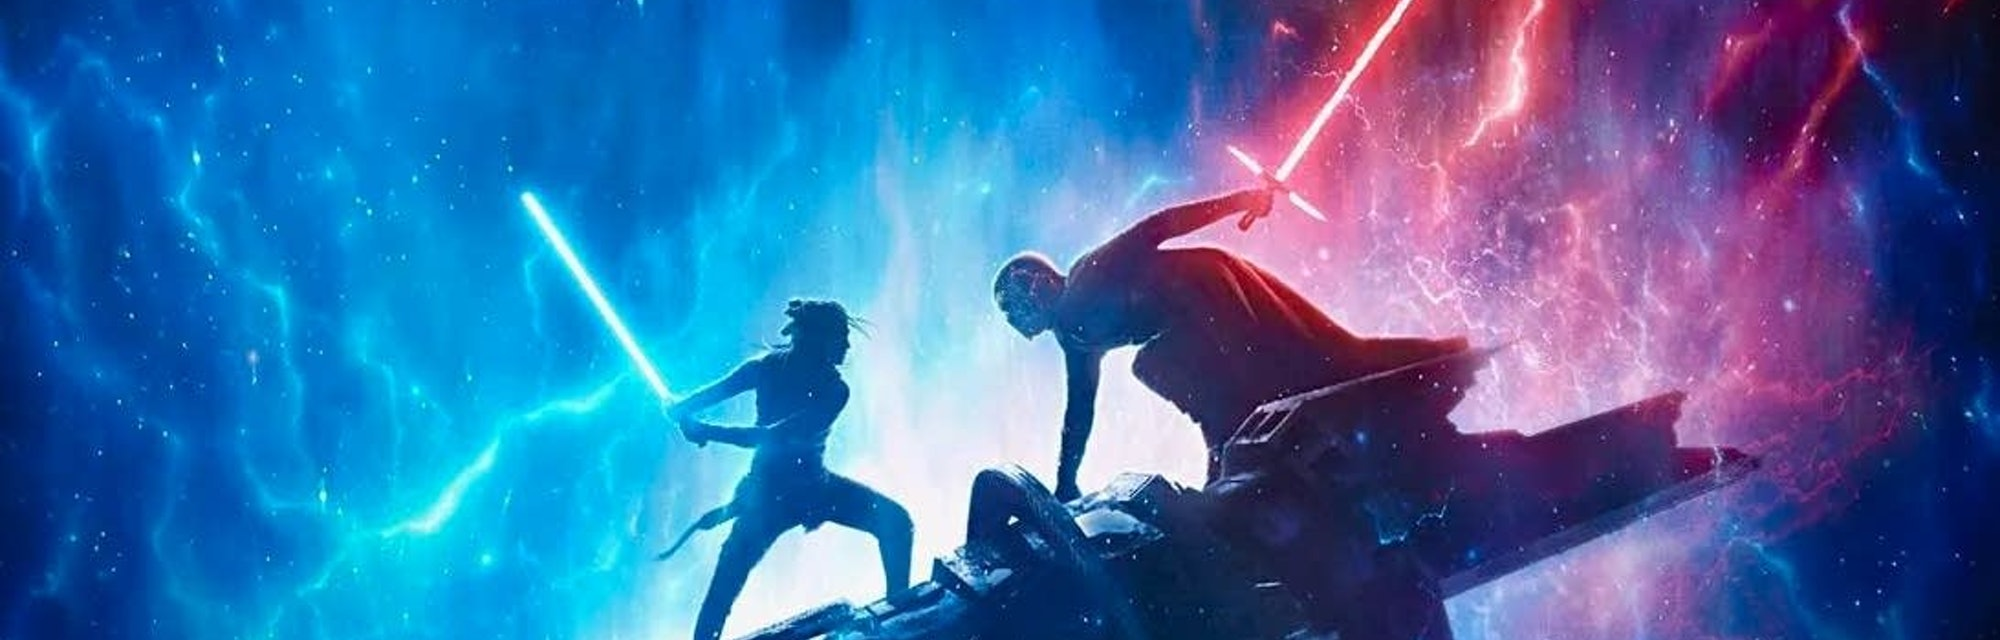 Star Wars Rise Of Skywalker Easter Egg Fixes A Tragic Prequels Moment